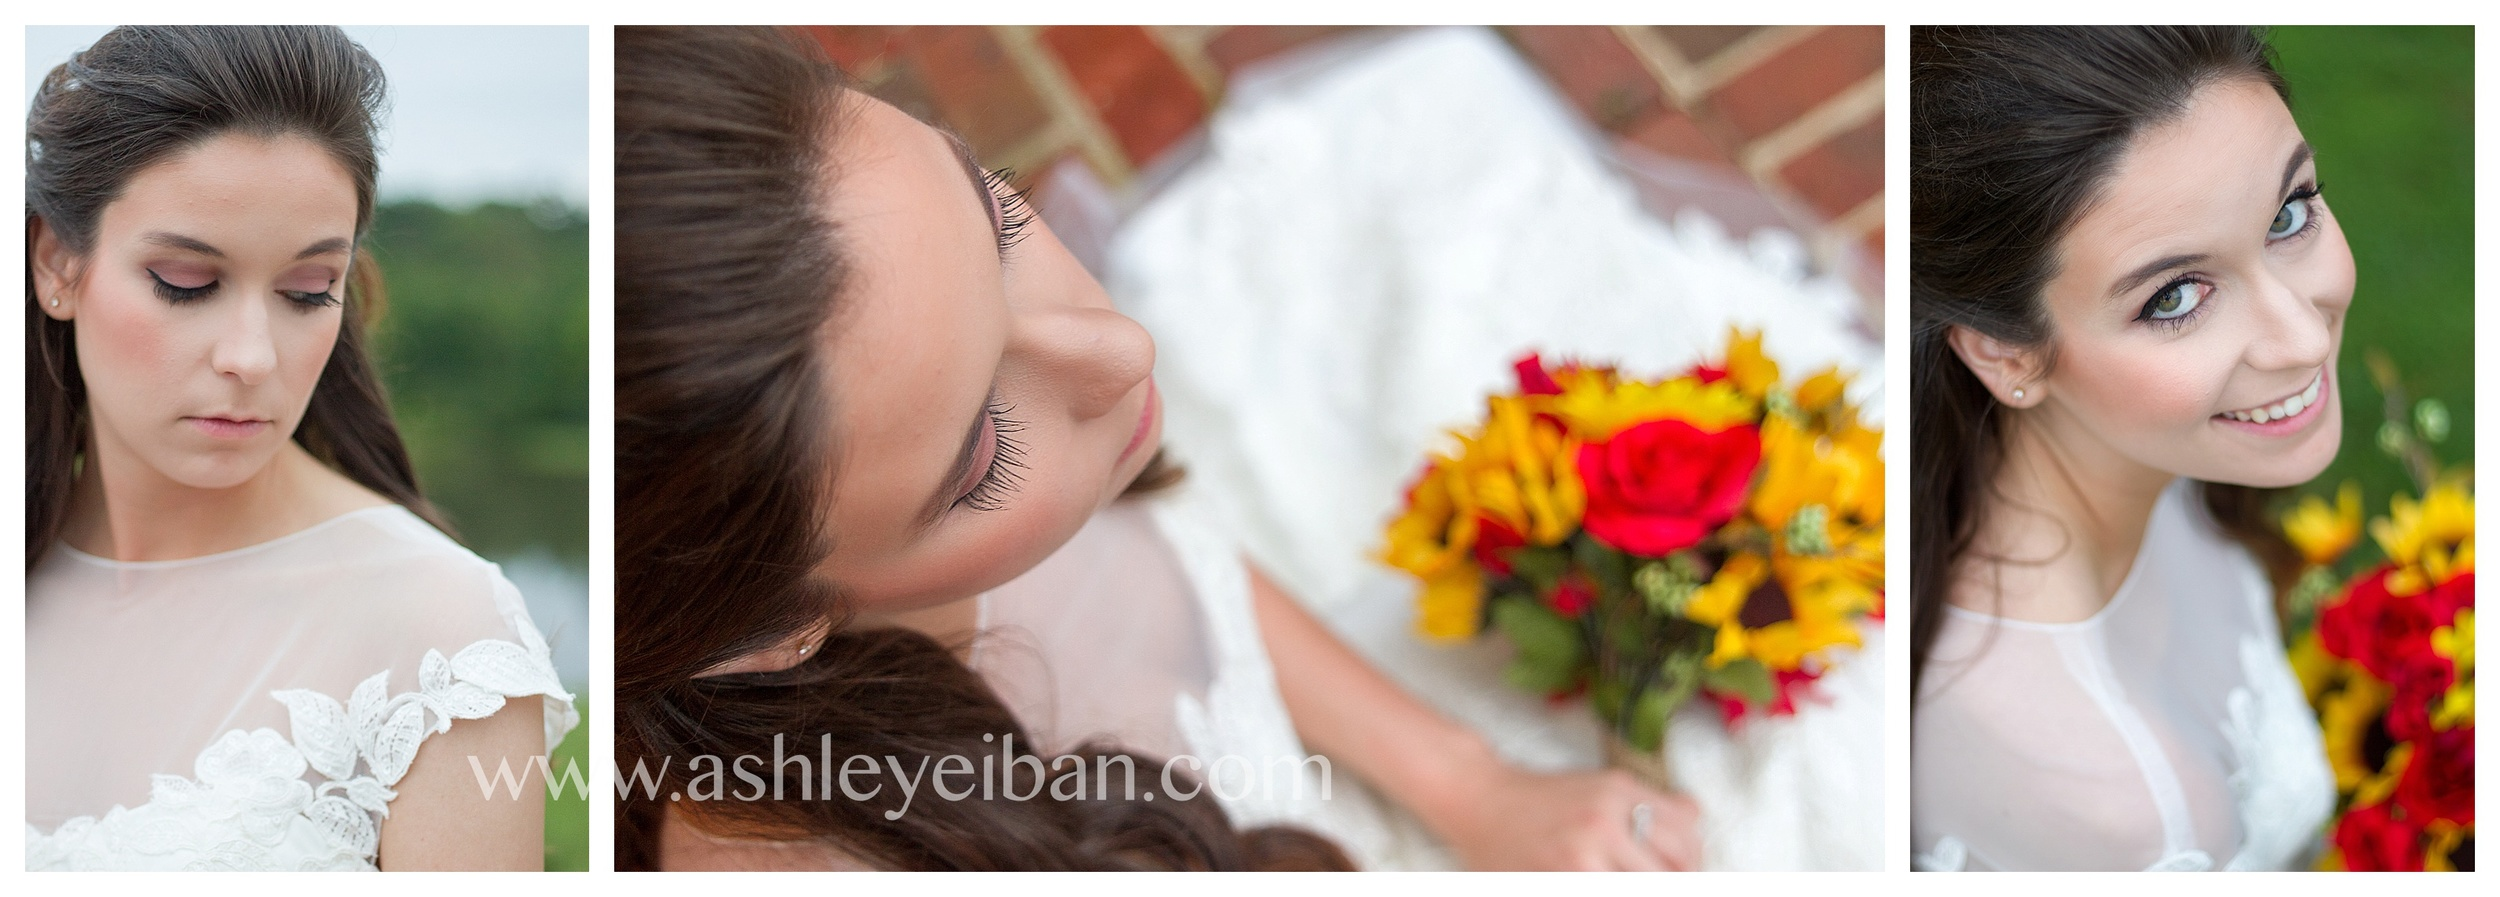 Lynchburg Virginia Wedding and Portrait Photographer // Ashley Eiban Photography